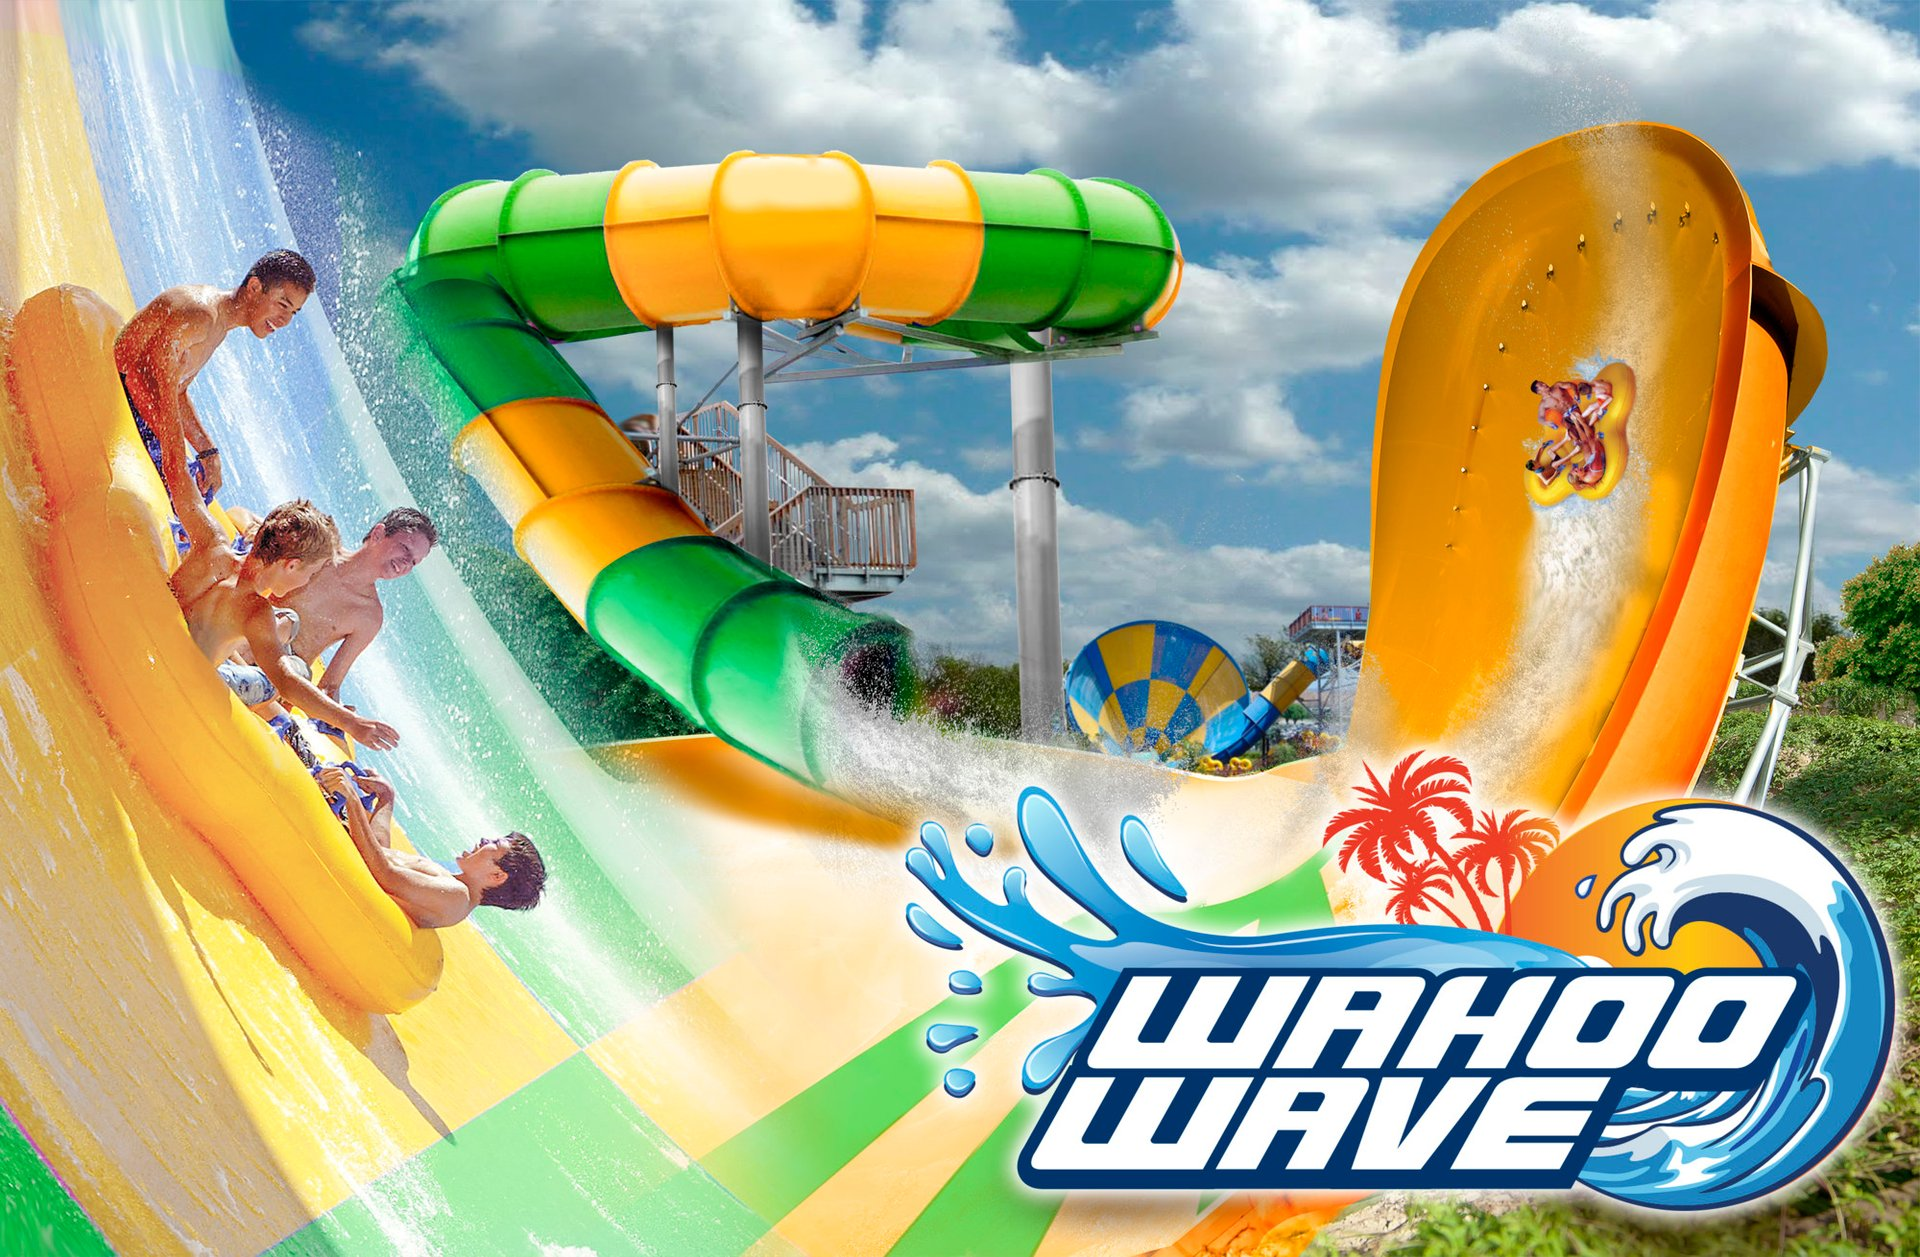 Group of people in tube on the Wahoo Wave ride